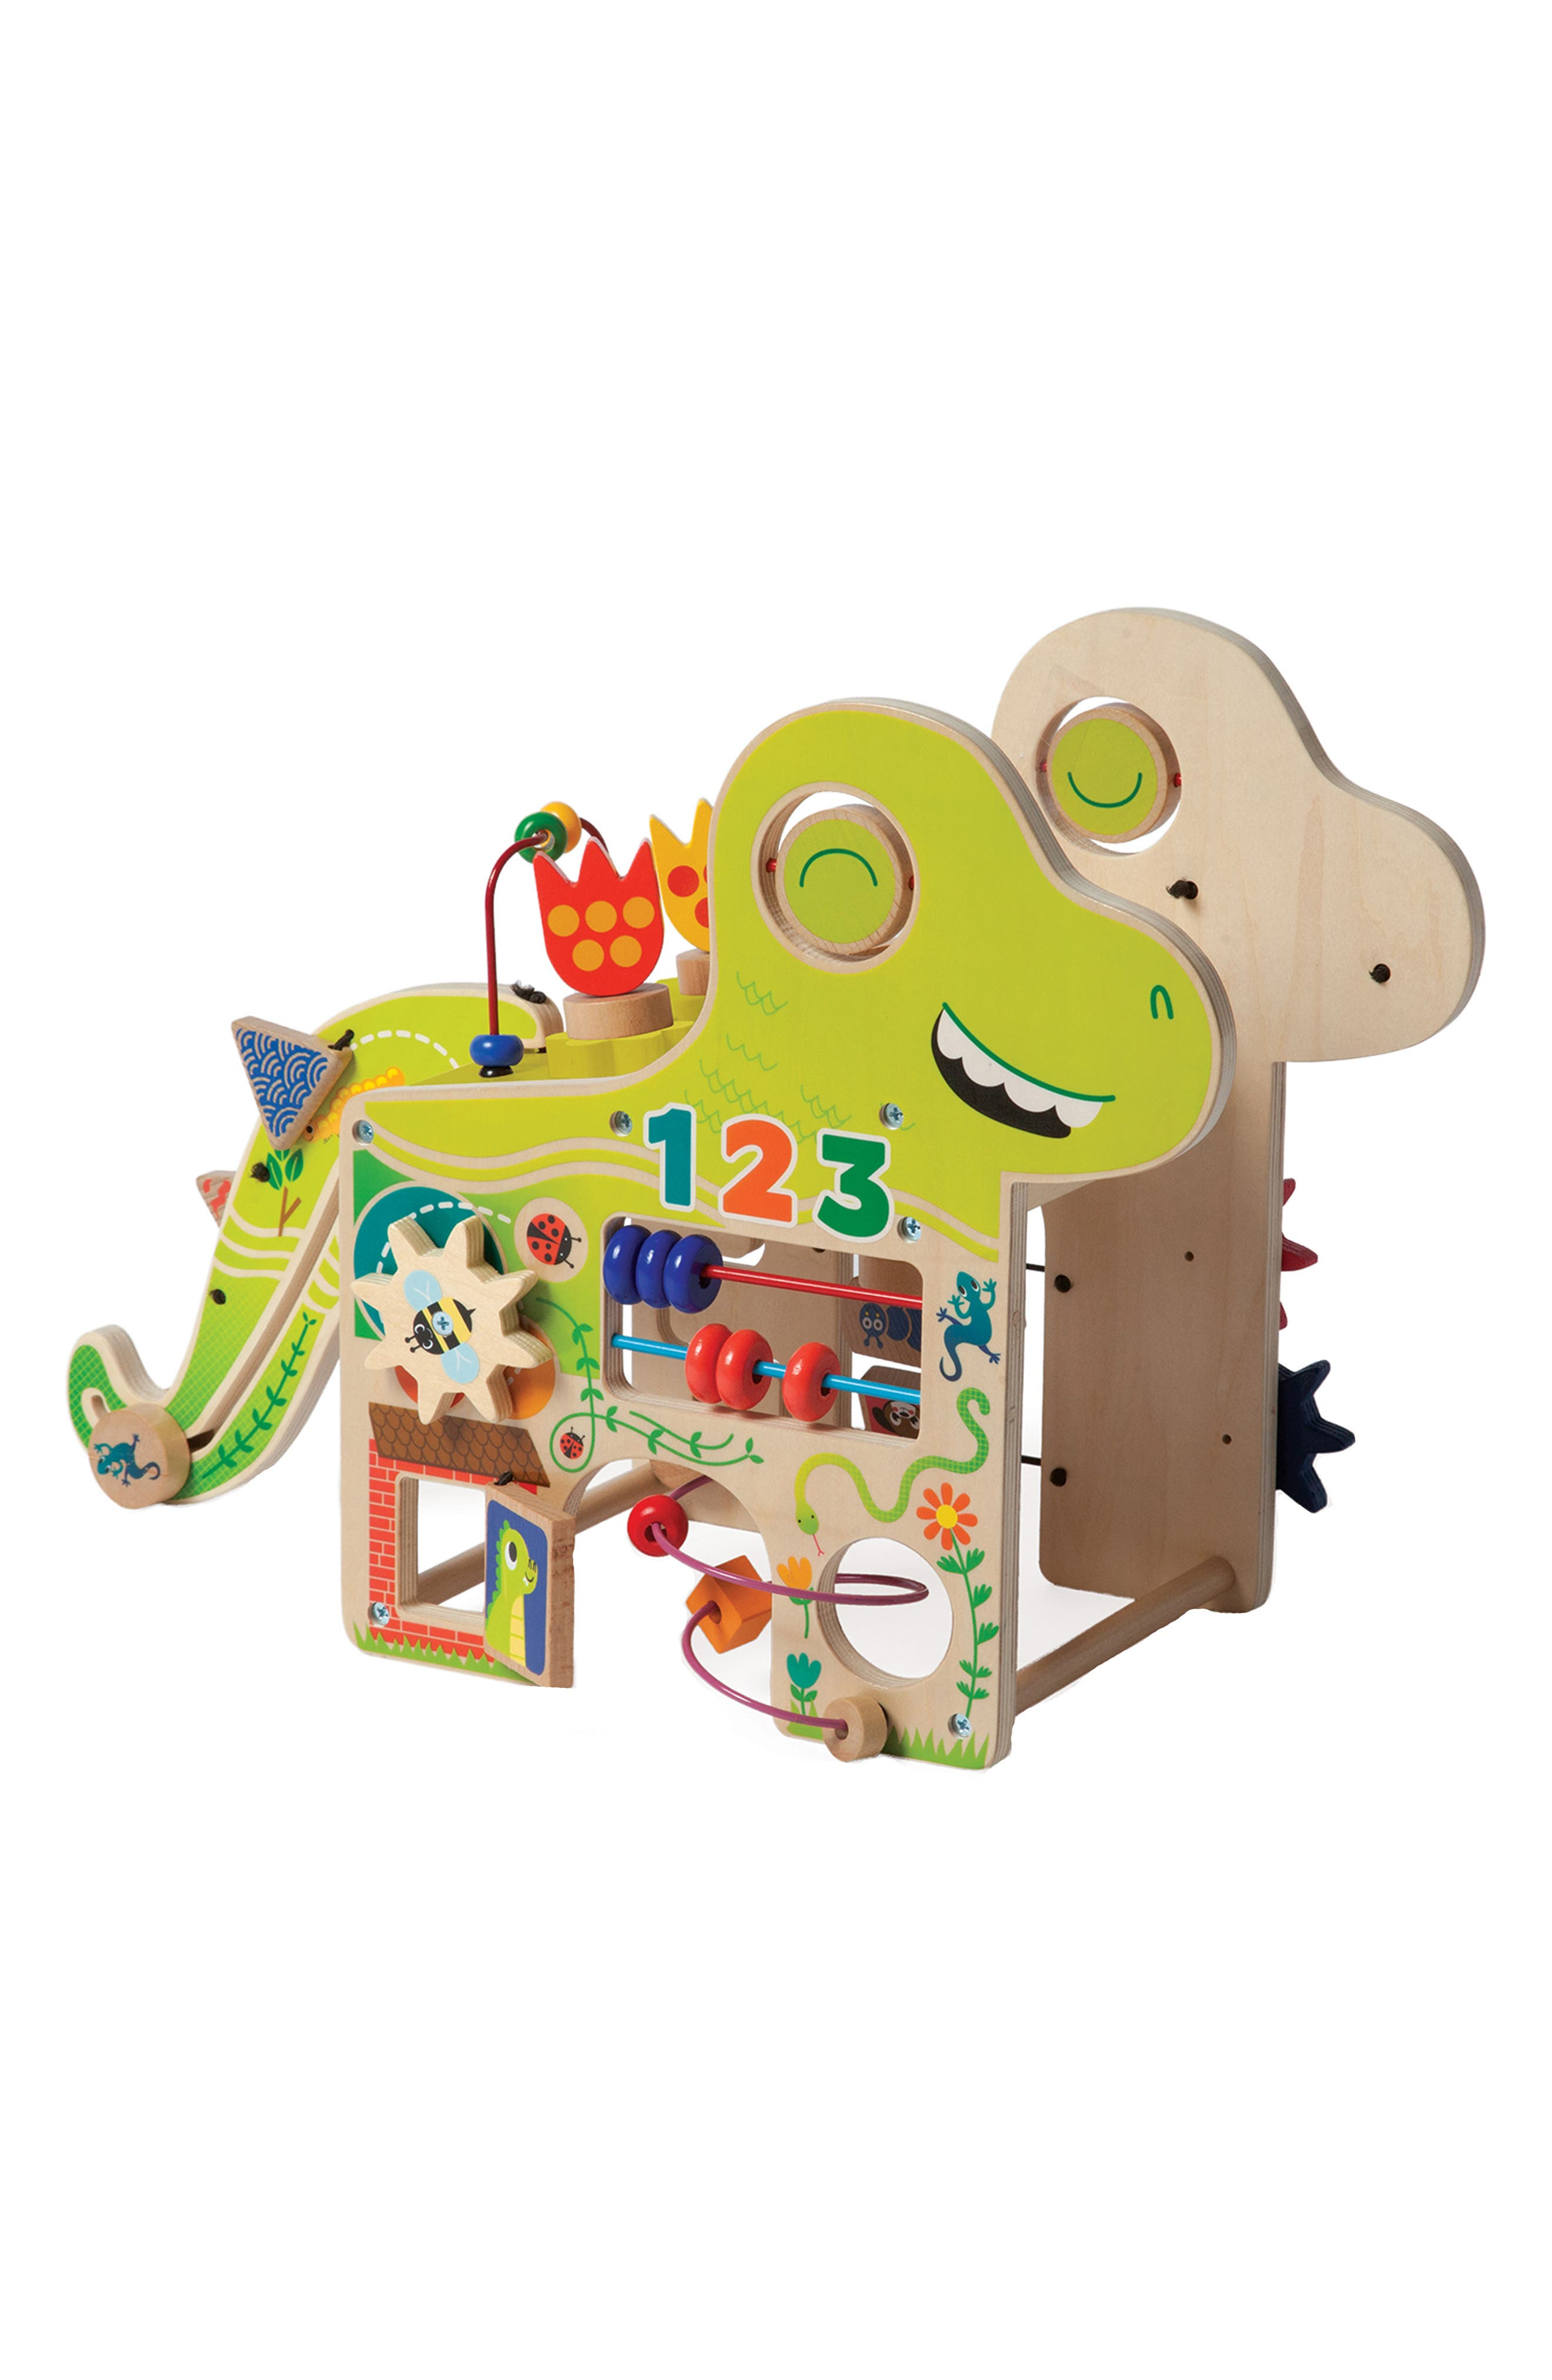 Wooden Playful Dino Activity Center,                             Alternate thumbnail 4, color,                             300